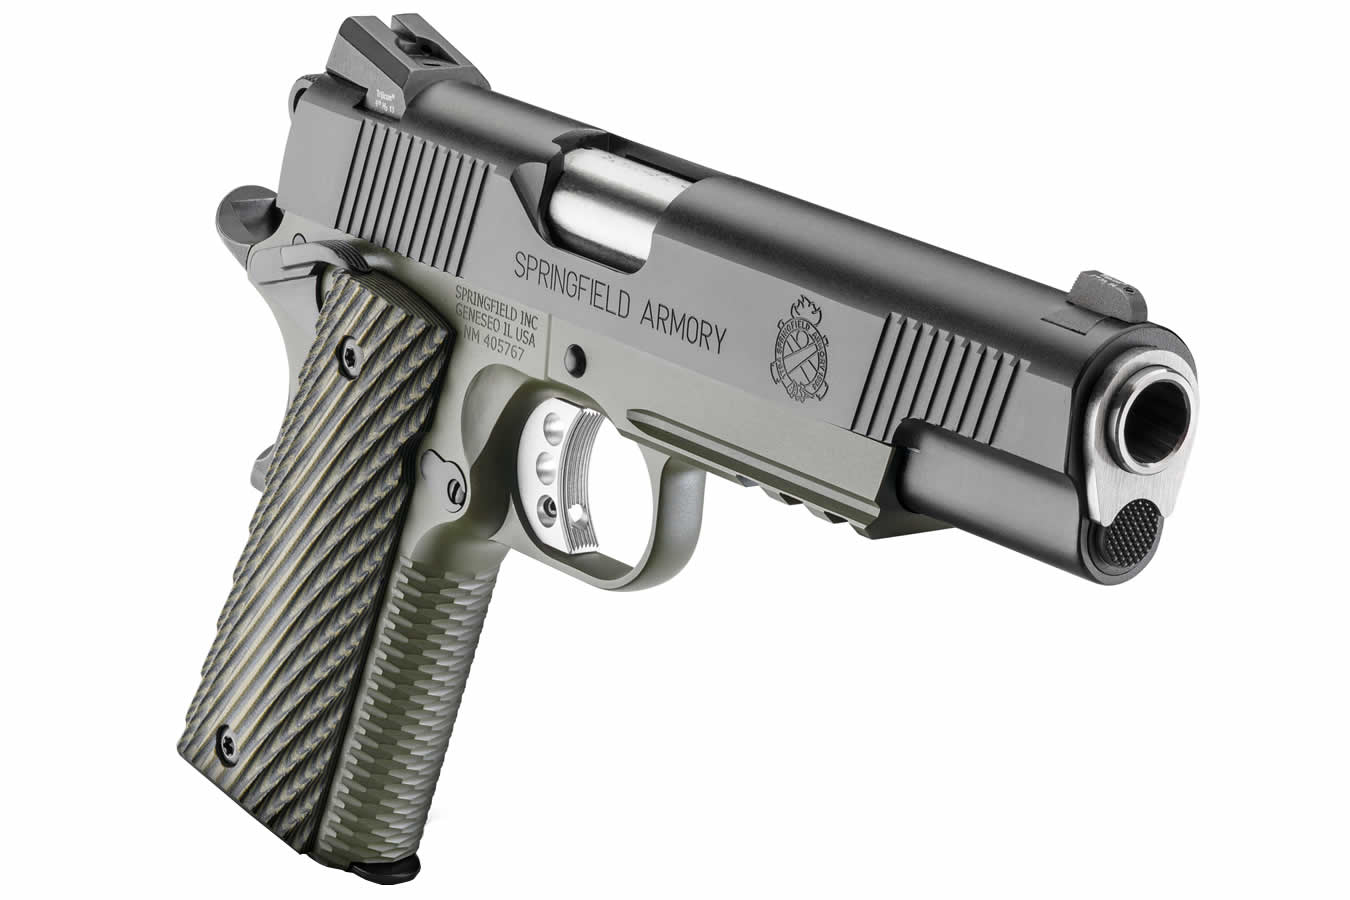 1911 Loaded MC Operator  45 ACP with G10 Grips and Night Sights